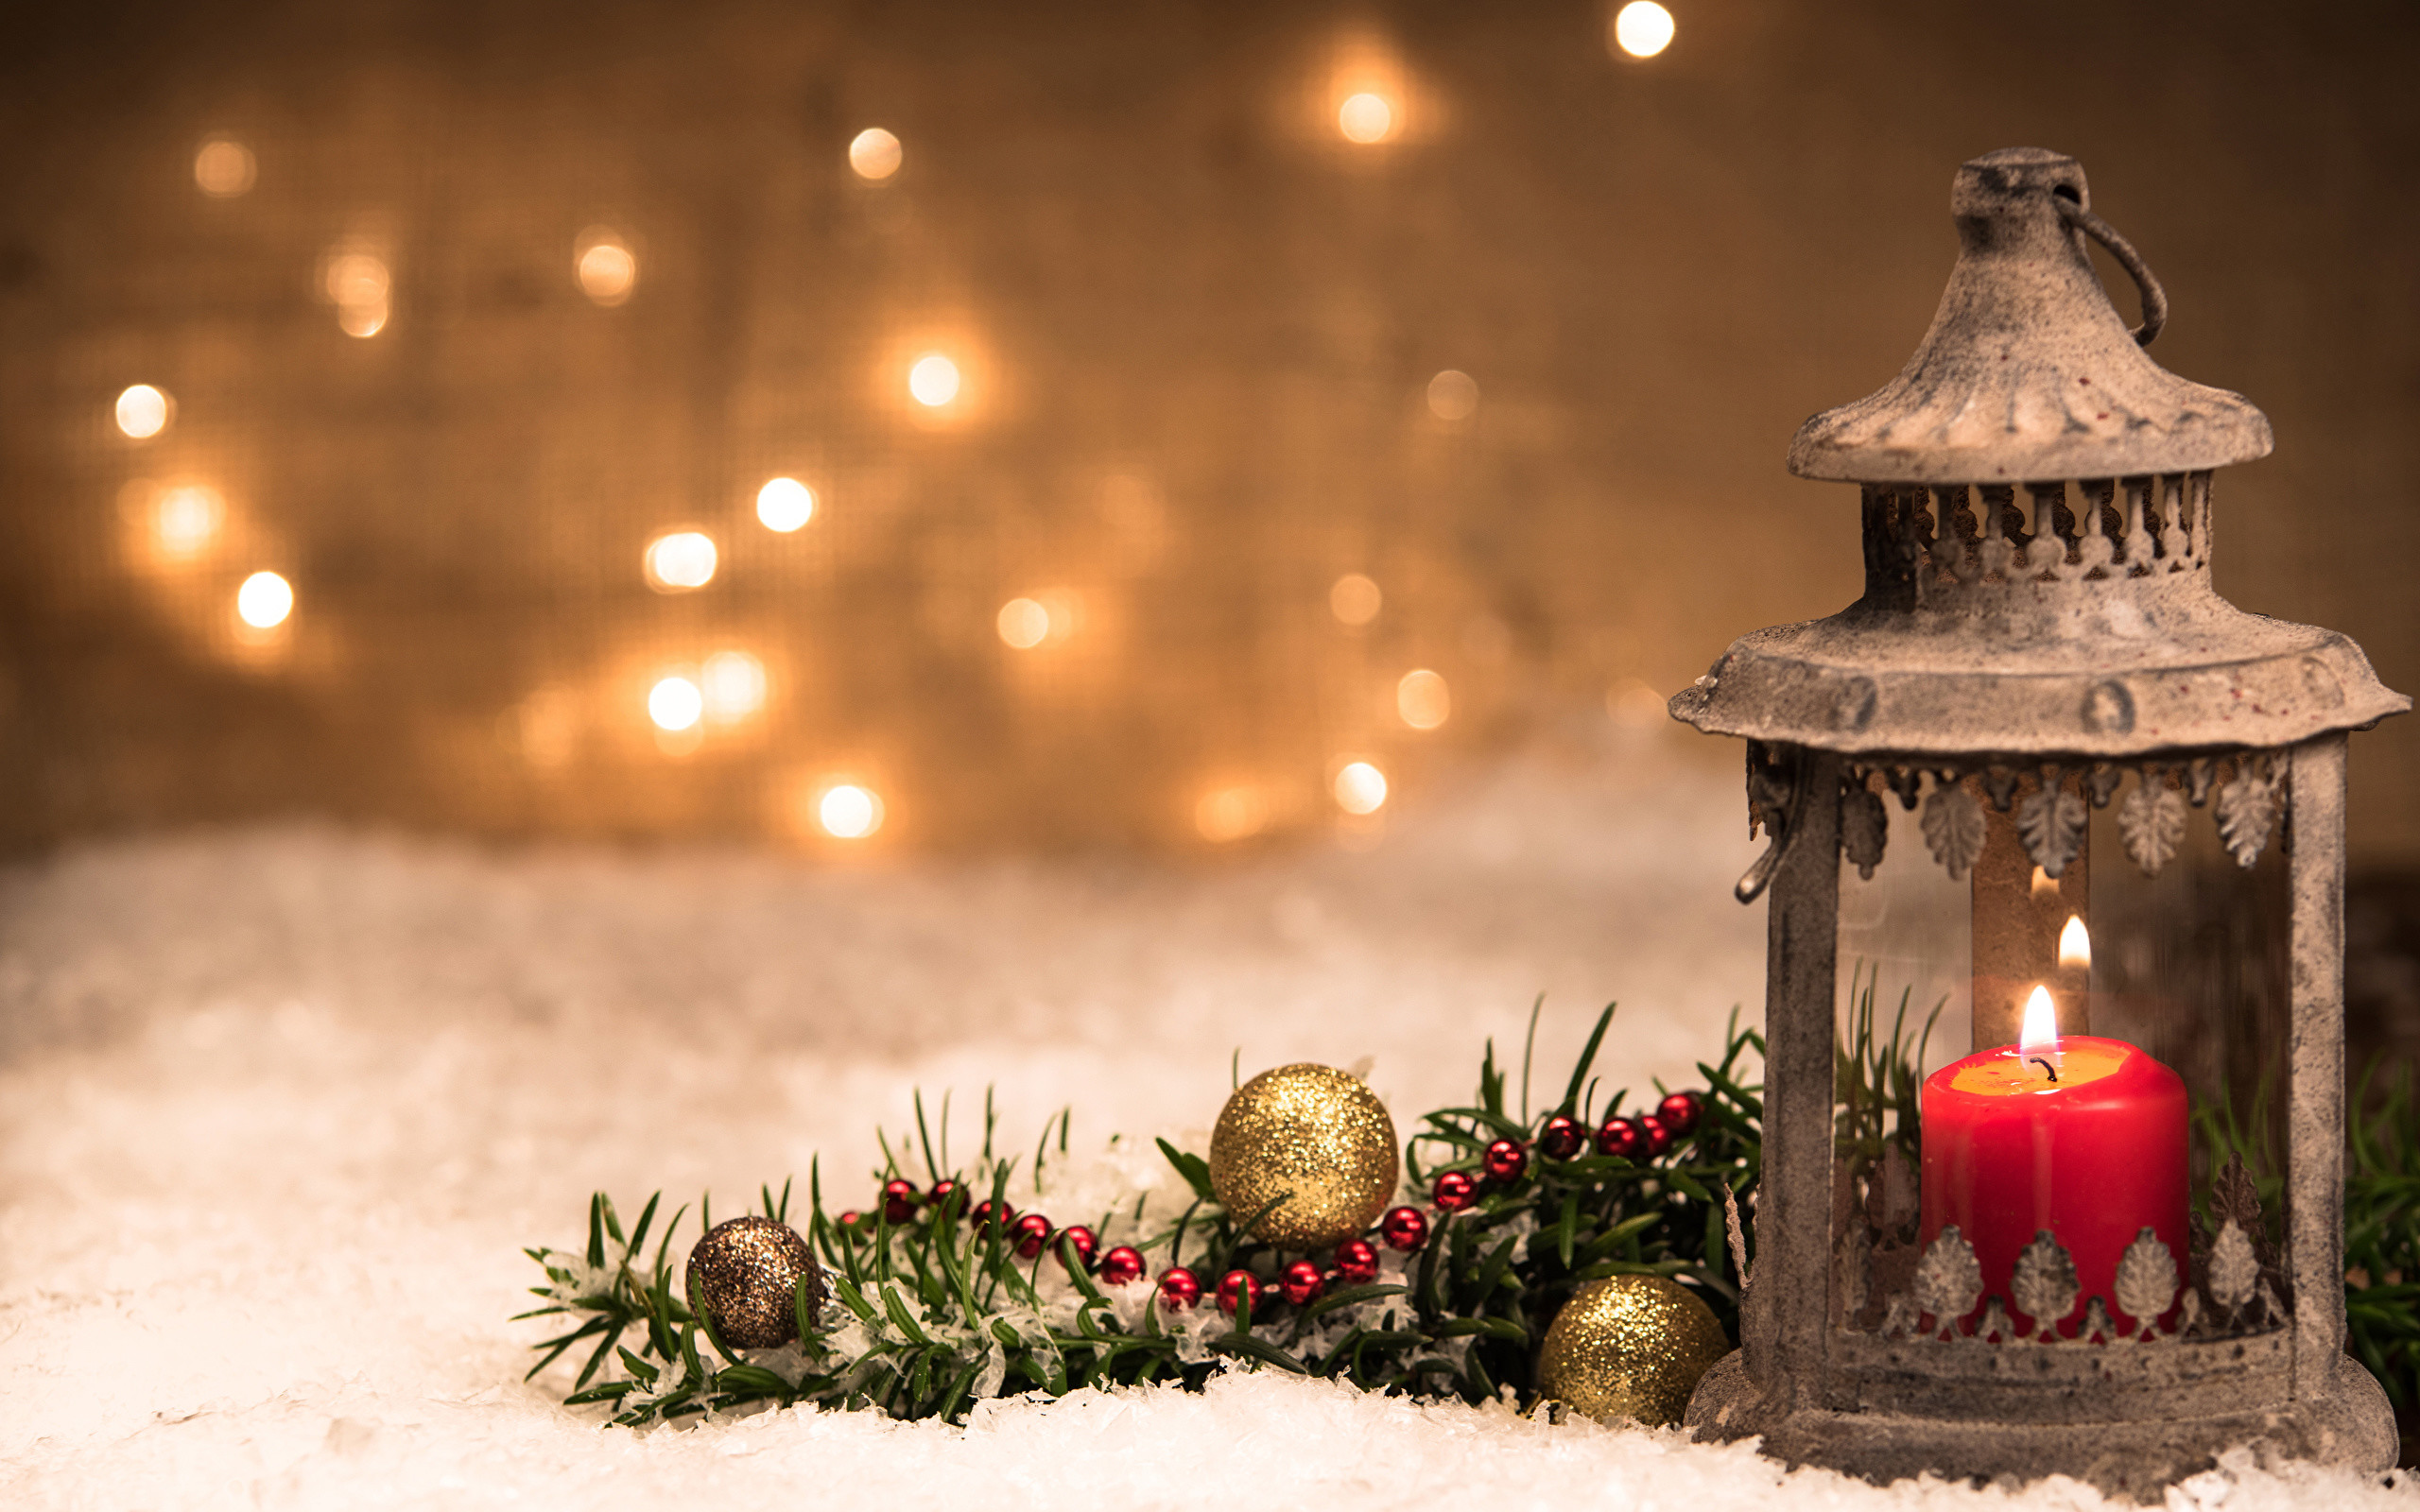 Christmas Candle Wallpaper 66 Images